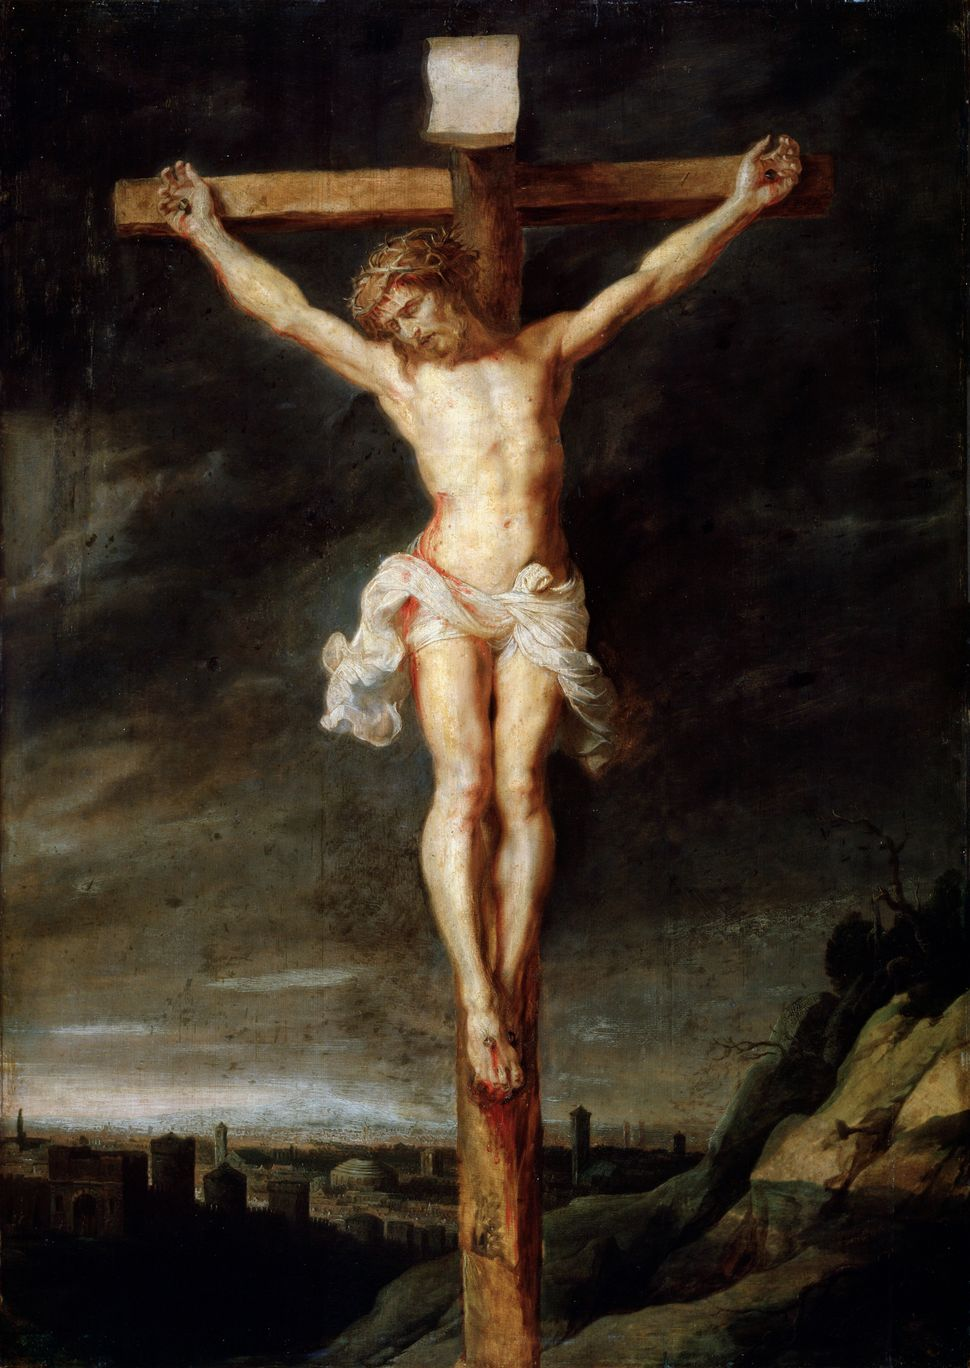 'The Crucifixion'. Rubens, Pieter Paul (1577-1640). Found in the collection of the State M. Ciurlionis Art Museum, Kaunas. (P